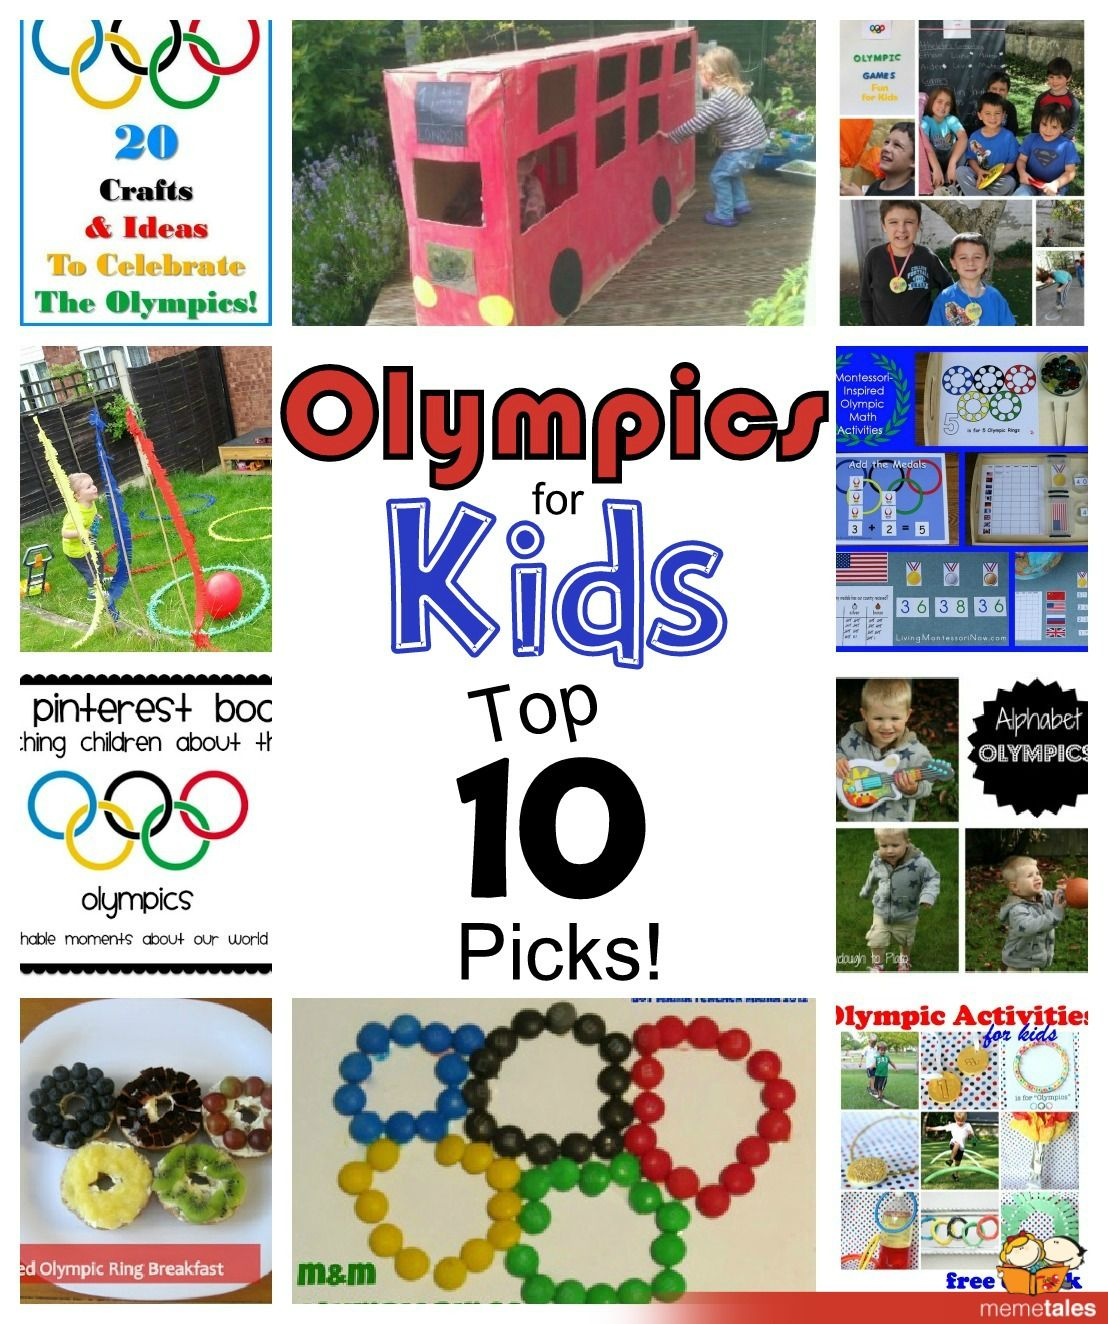 Olympics For Kids Top 10 Picks